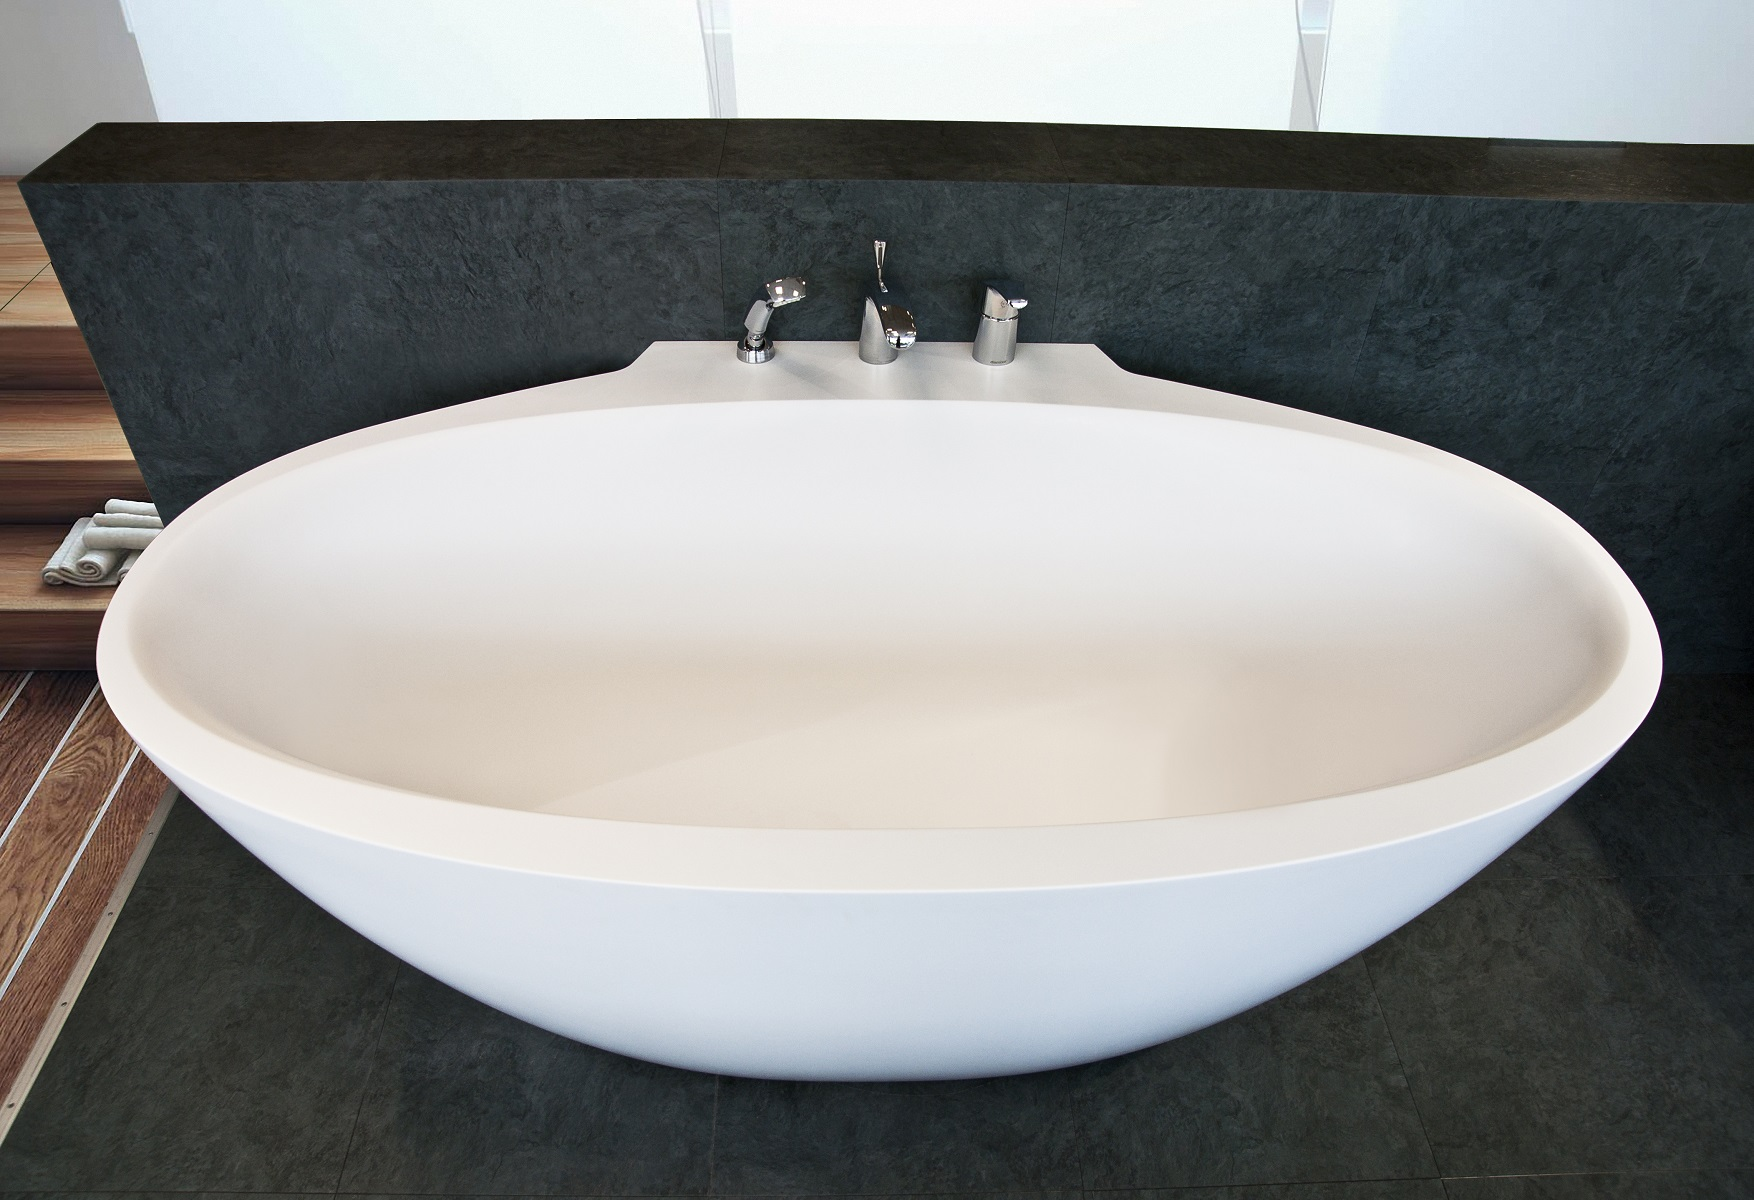 Aquatica sensuality mini wall back to wall solid surface bathtub 5 web